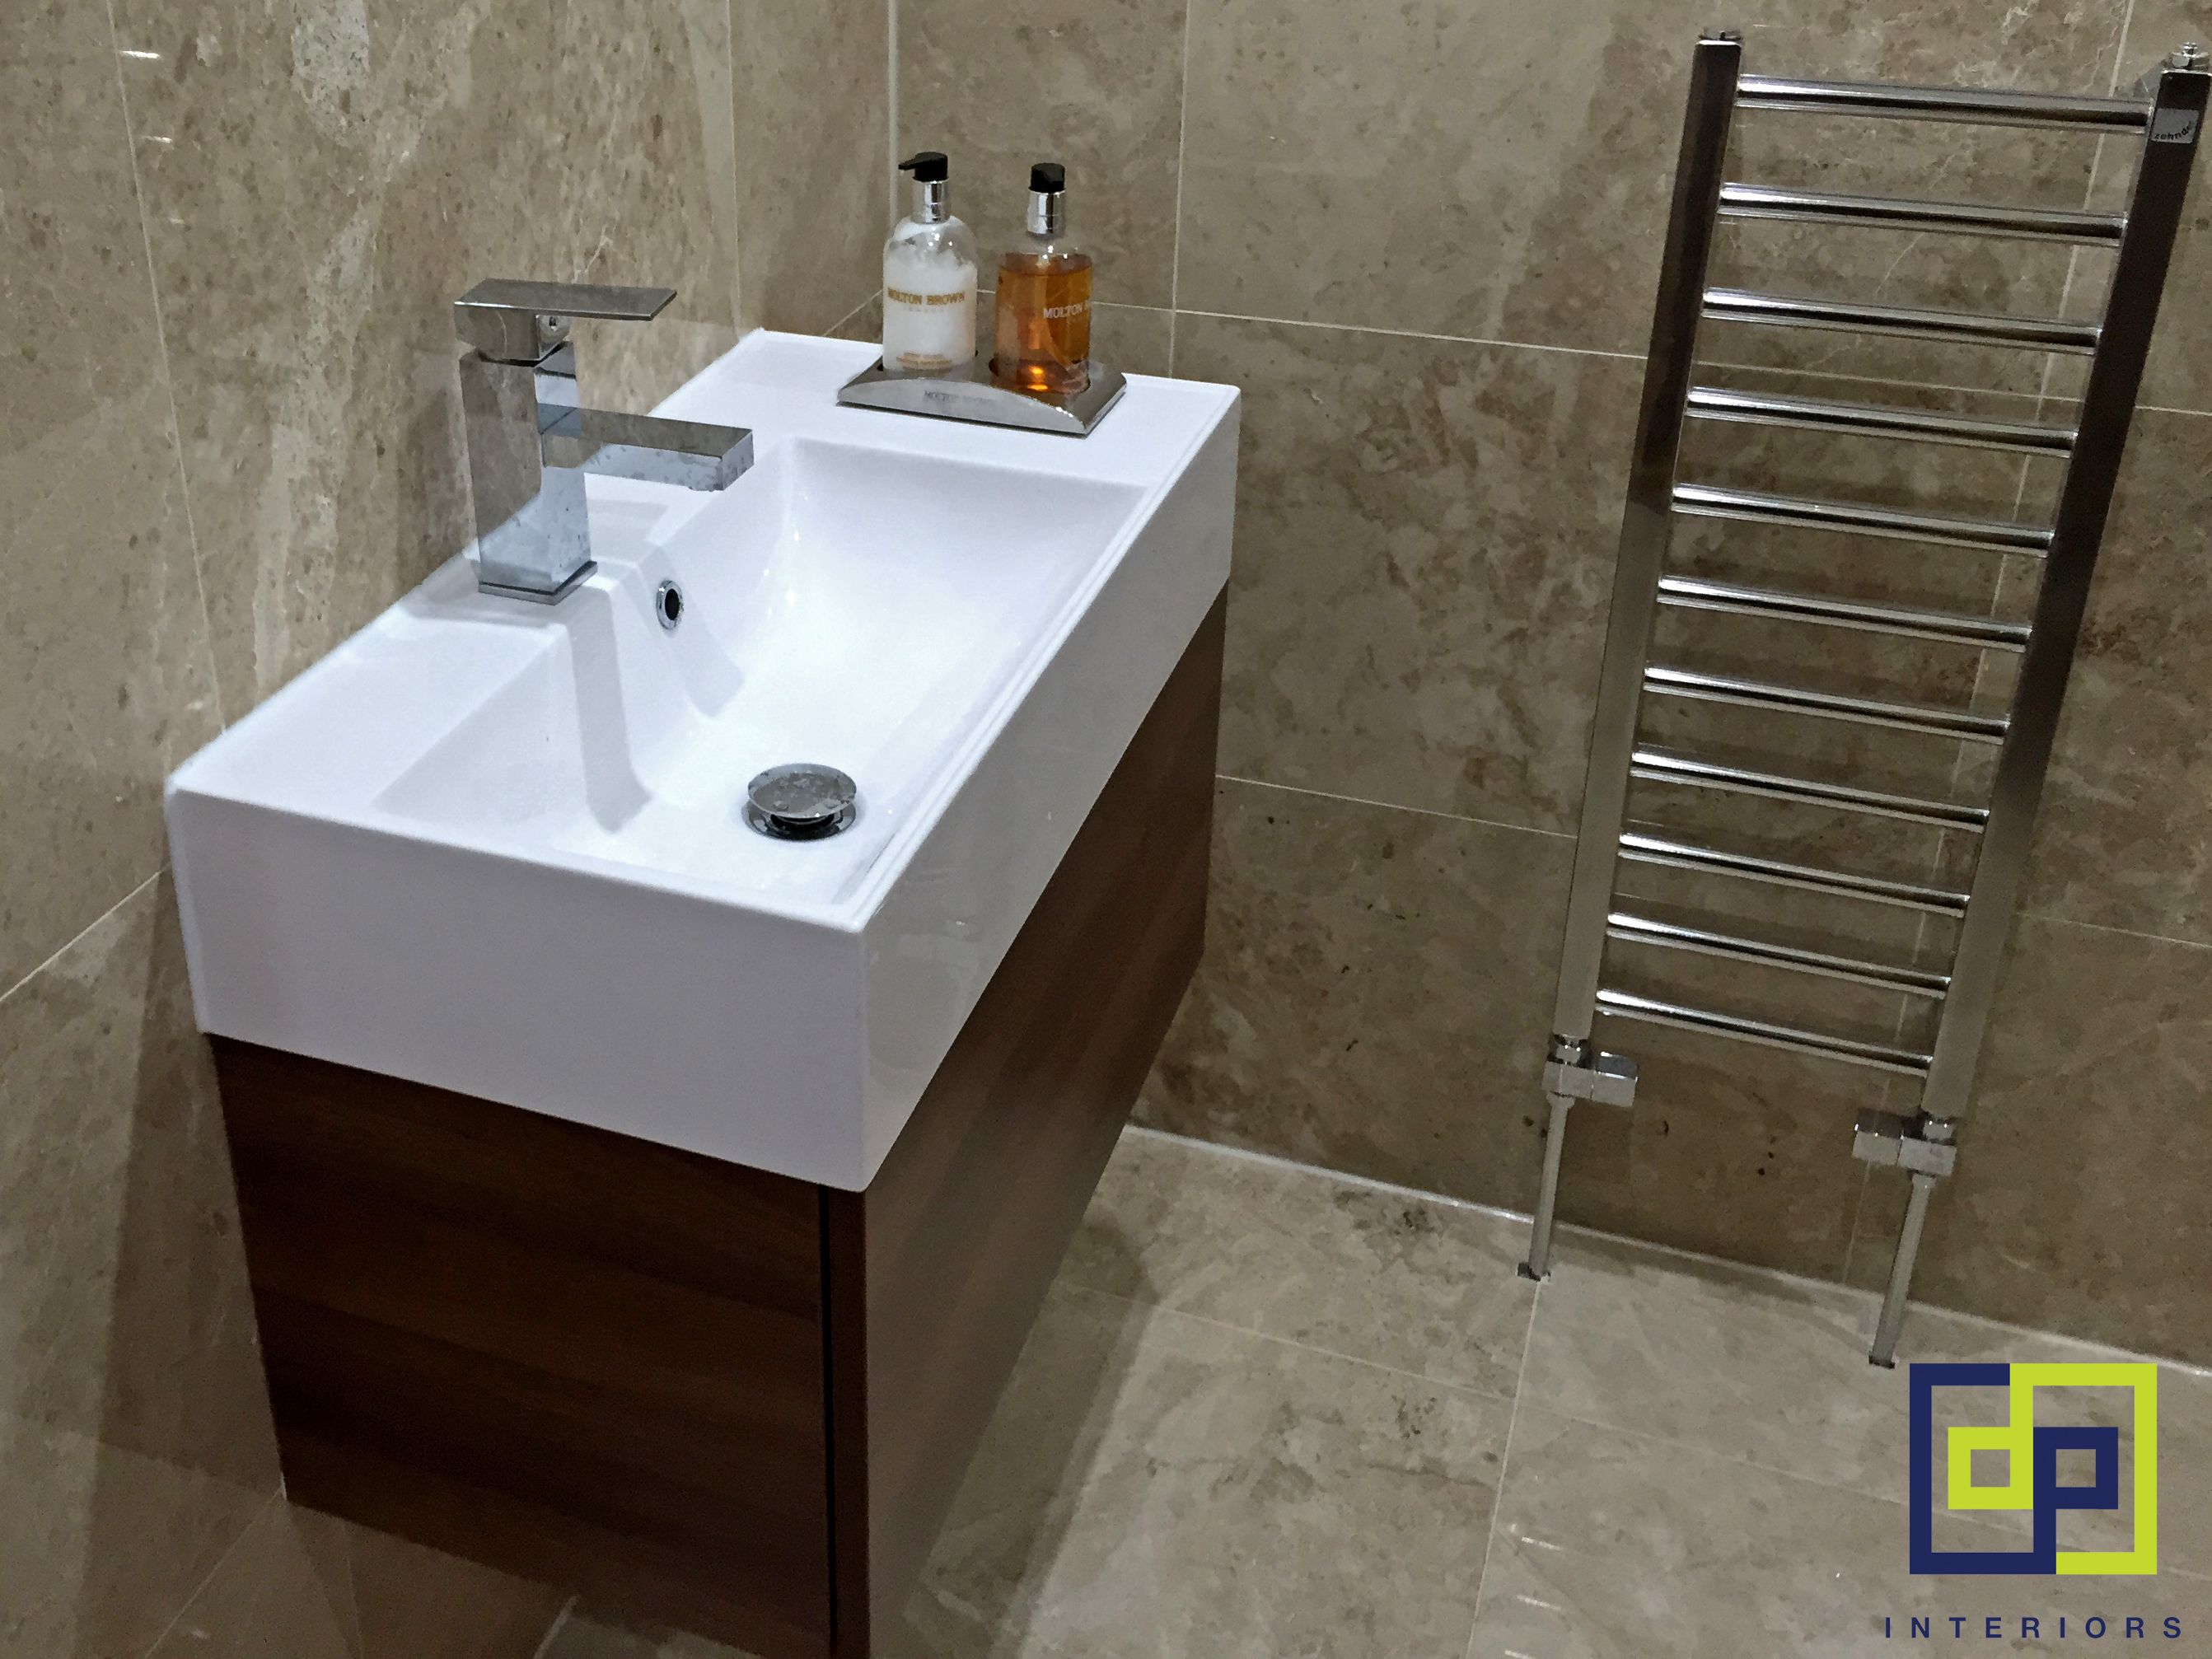 travertine tiles, walnut basin unit | completed bathrooms- dp